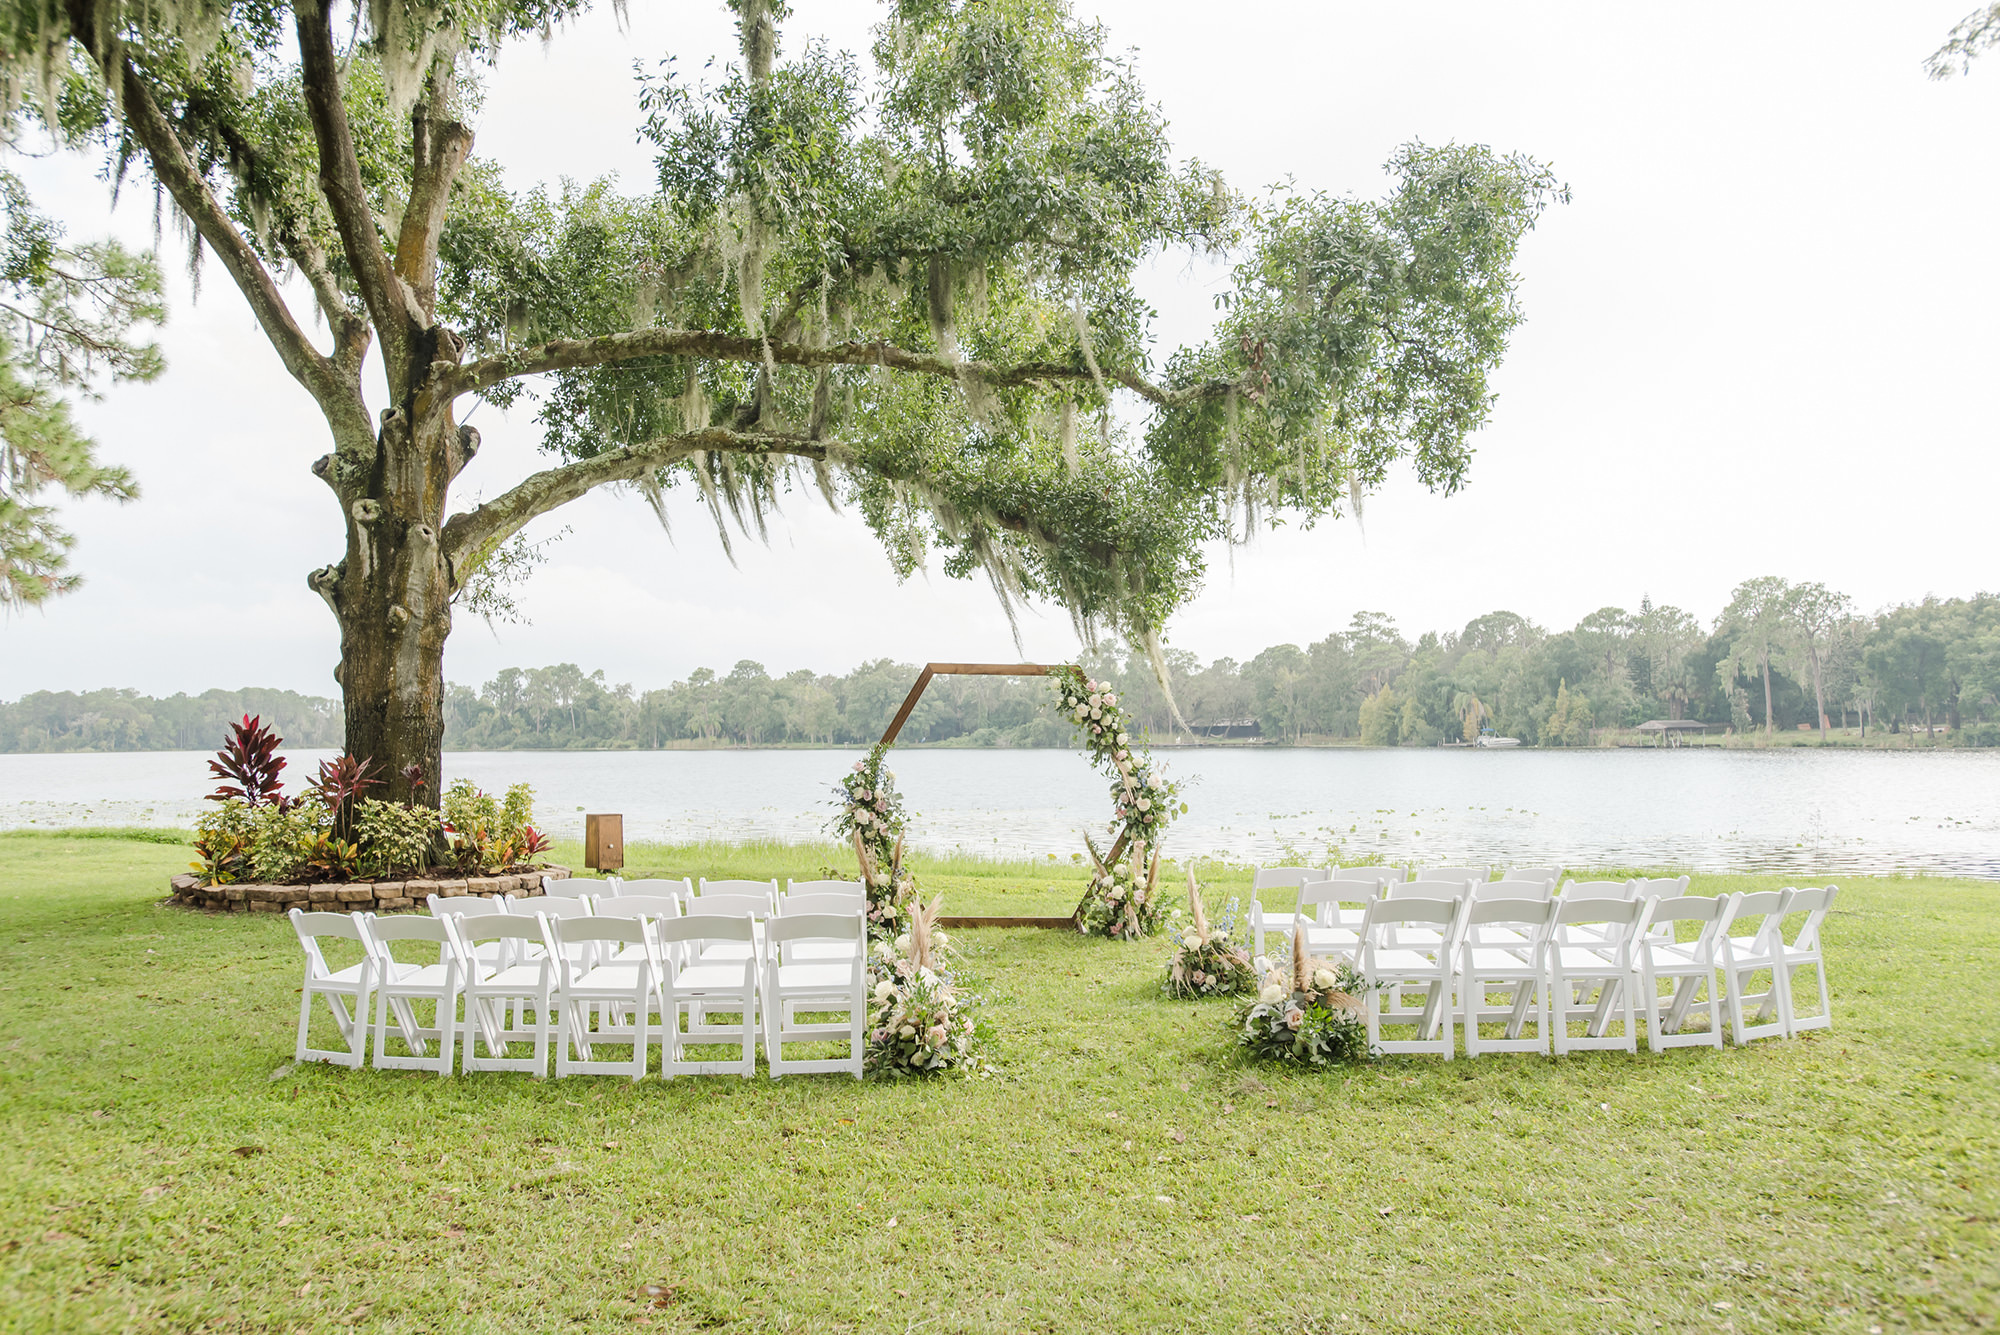 Florida Outdoor Waterfront Wedding Ceremony, Under Large Flowing Oak Tree, Rustic Wooden Hexagon Wedding Arch with Whimsical Inspired White and Dusty Rose and Pompous Grass Ceremony Flowers, White Chairs for Intimate Lakefront Ceremony   Tampa Bay Wedding Planner and Day of Coordinator Elegant Affairs by Design   Venue Barn at Crescent Lake